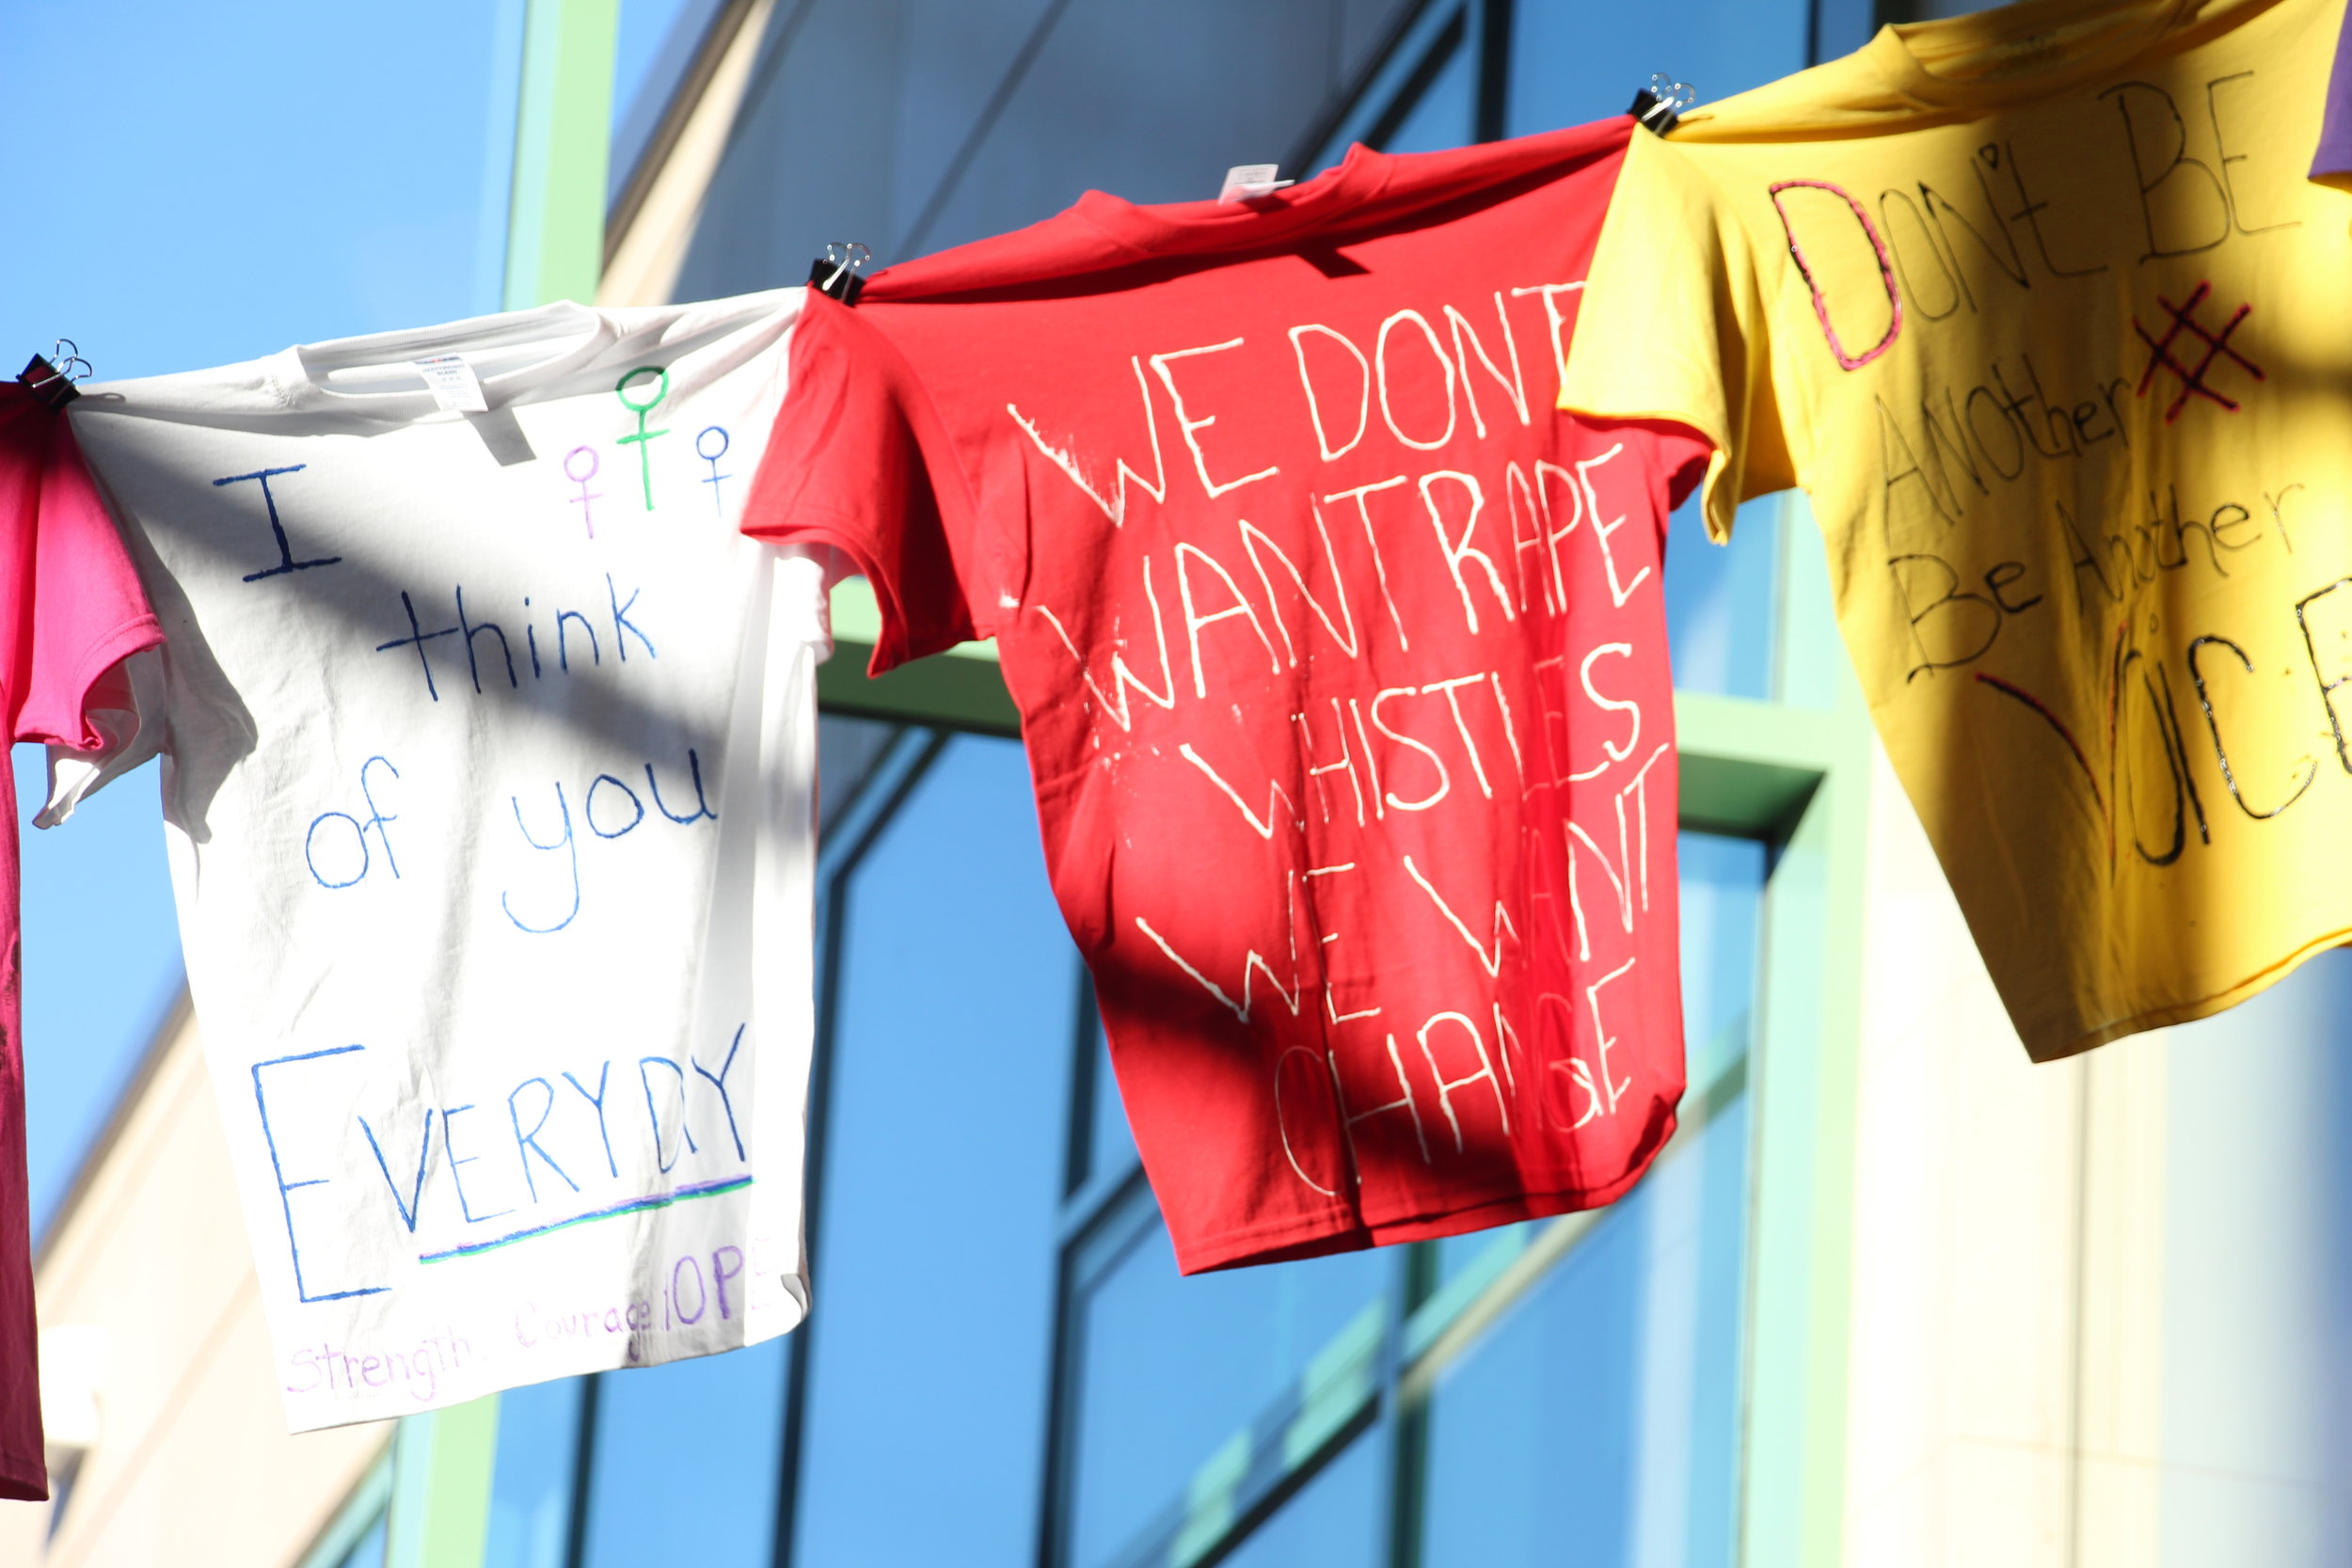 Each T-shirt has a story behind it. The T-shirts are part of an effort to encourage students to have conversations about these issues. Photo by Ren Friemann